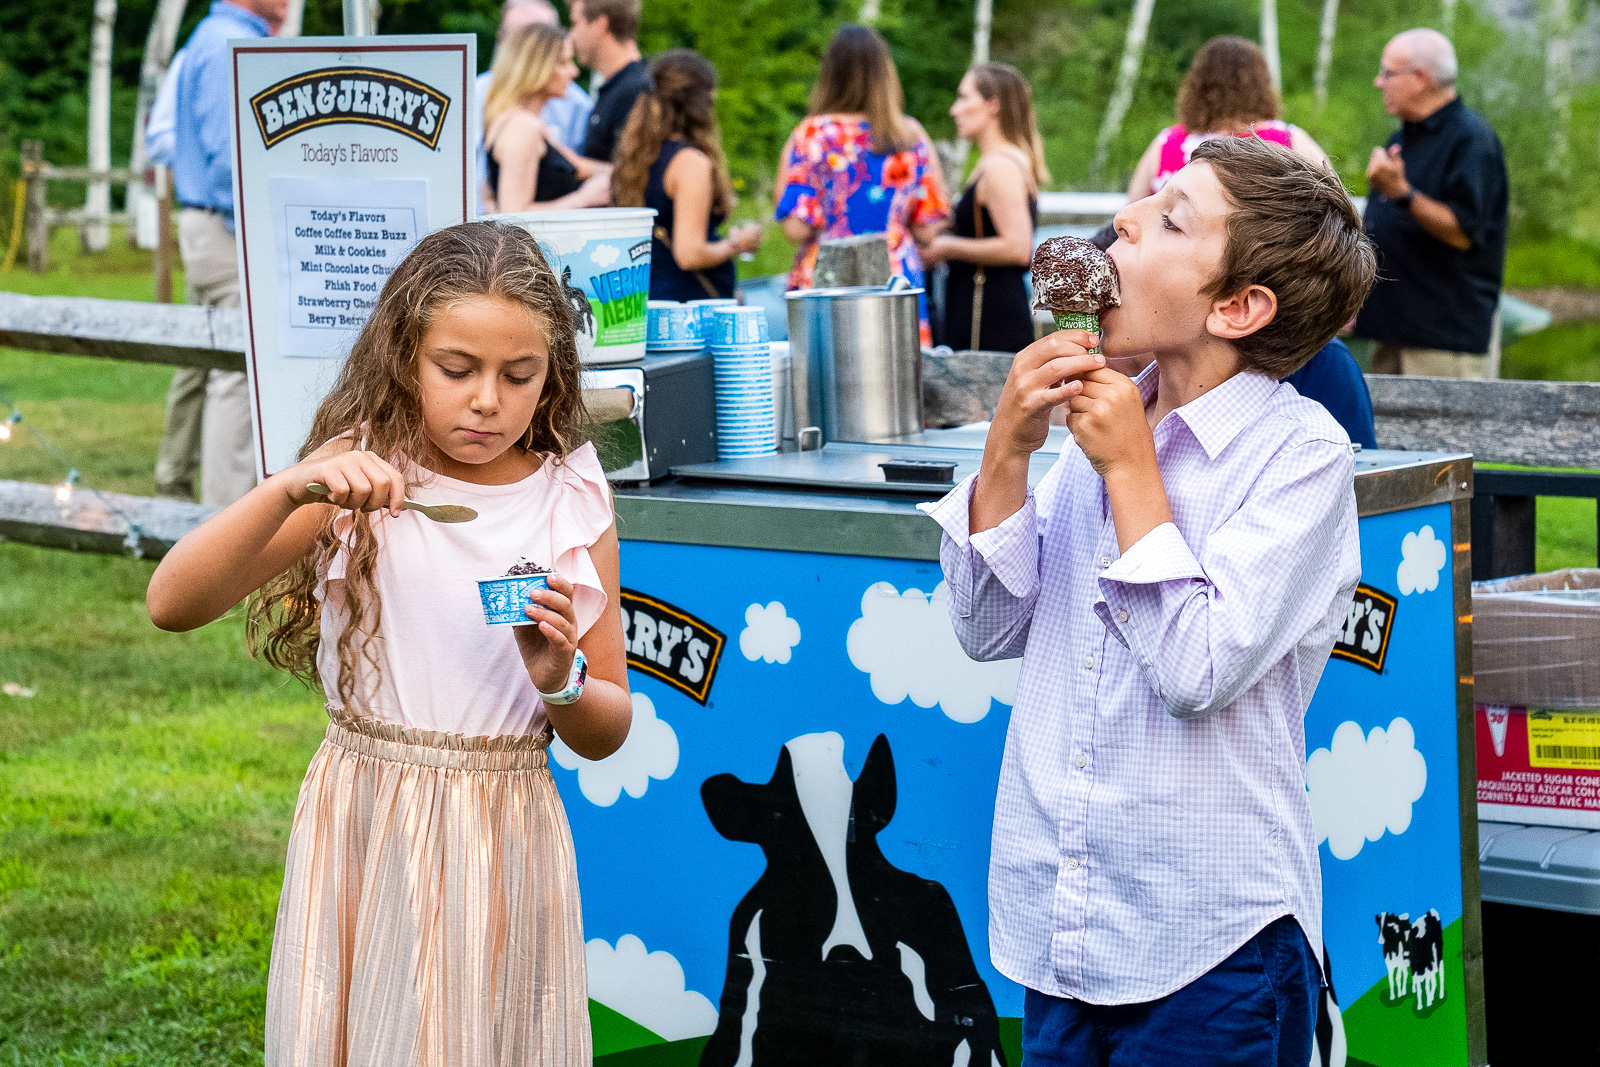 Ben and Jerrys wedding cart